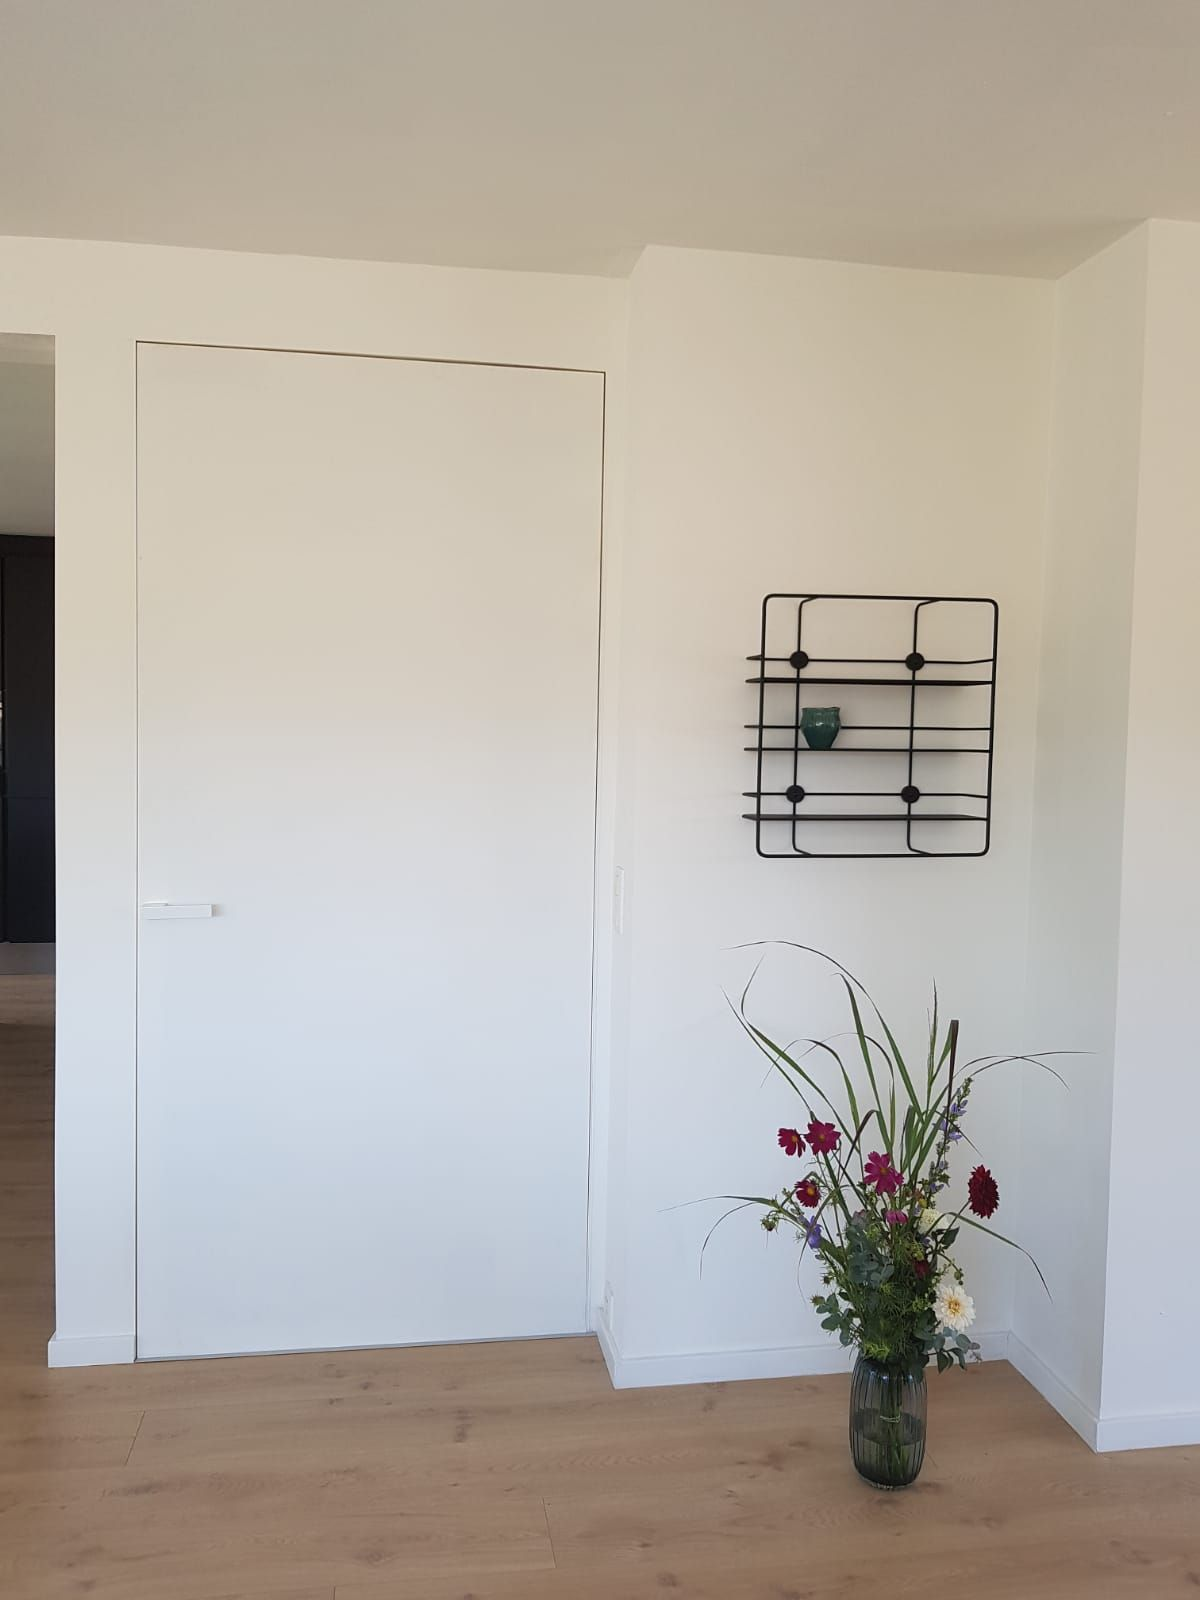 Invisible Xinnix Door By Miroiterie Leys Porte Coulissante